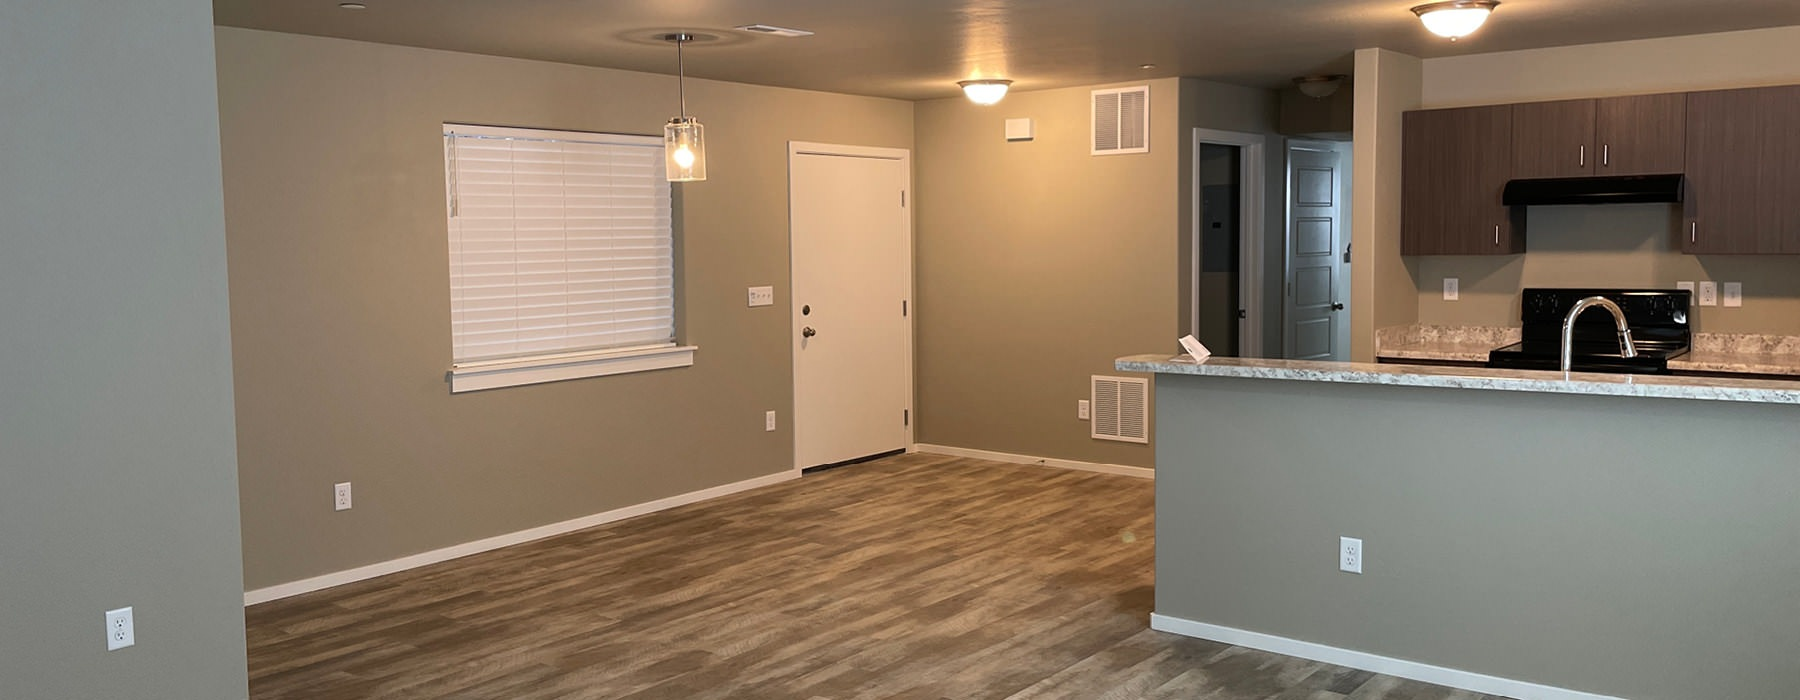 iving room with ceiling fan and light fixture open to kitchen and dining areas